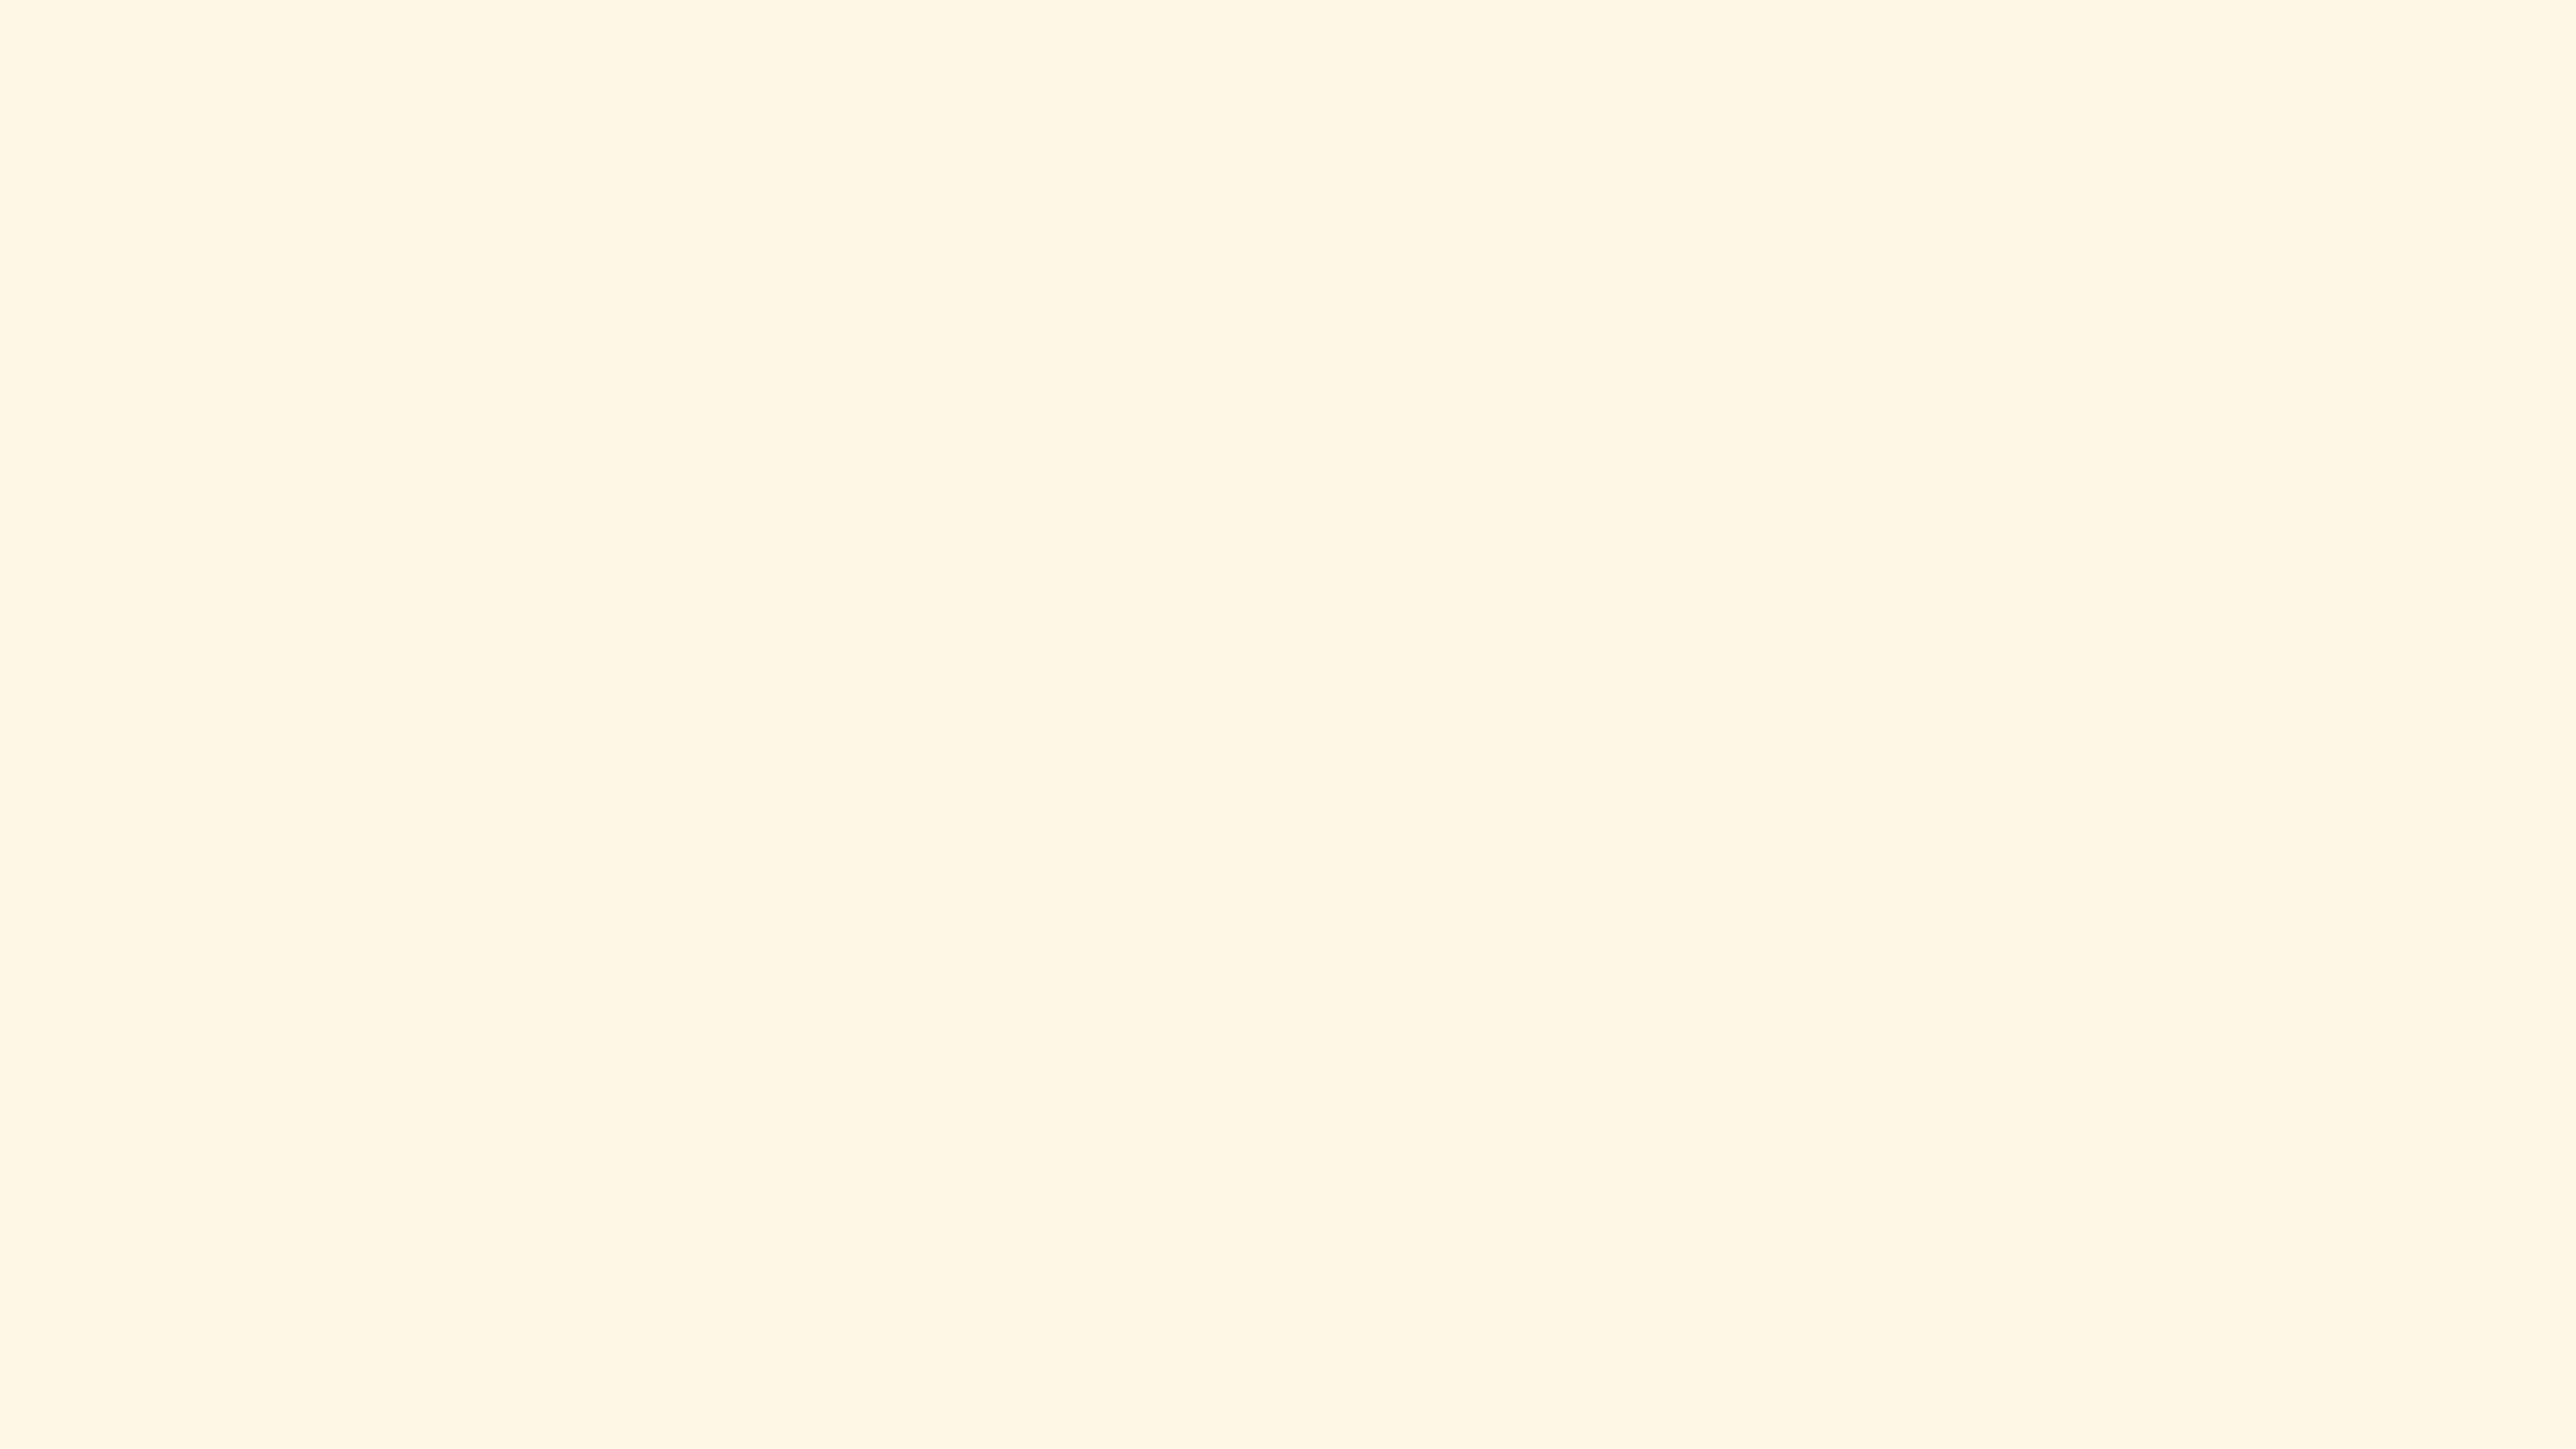 3840x2160 Cosmic Latte Solid Color Background